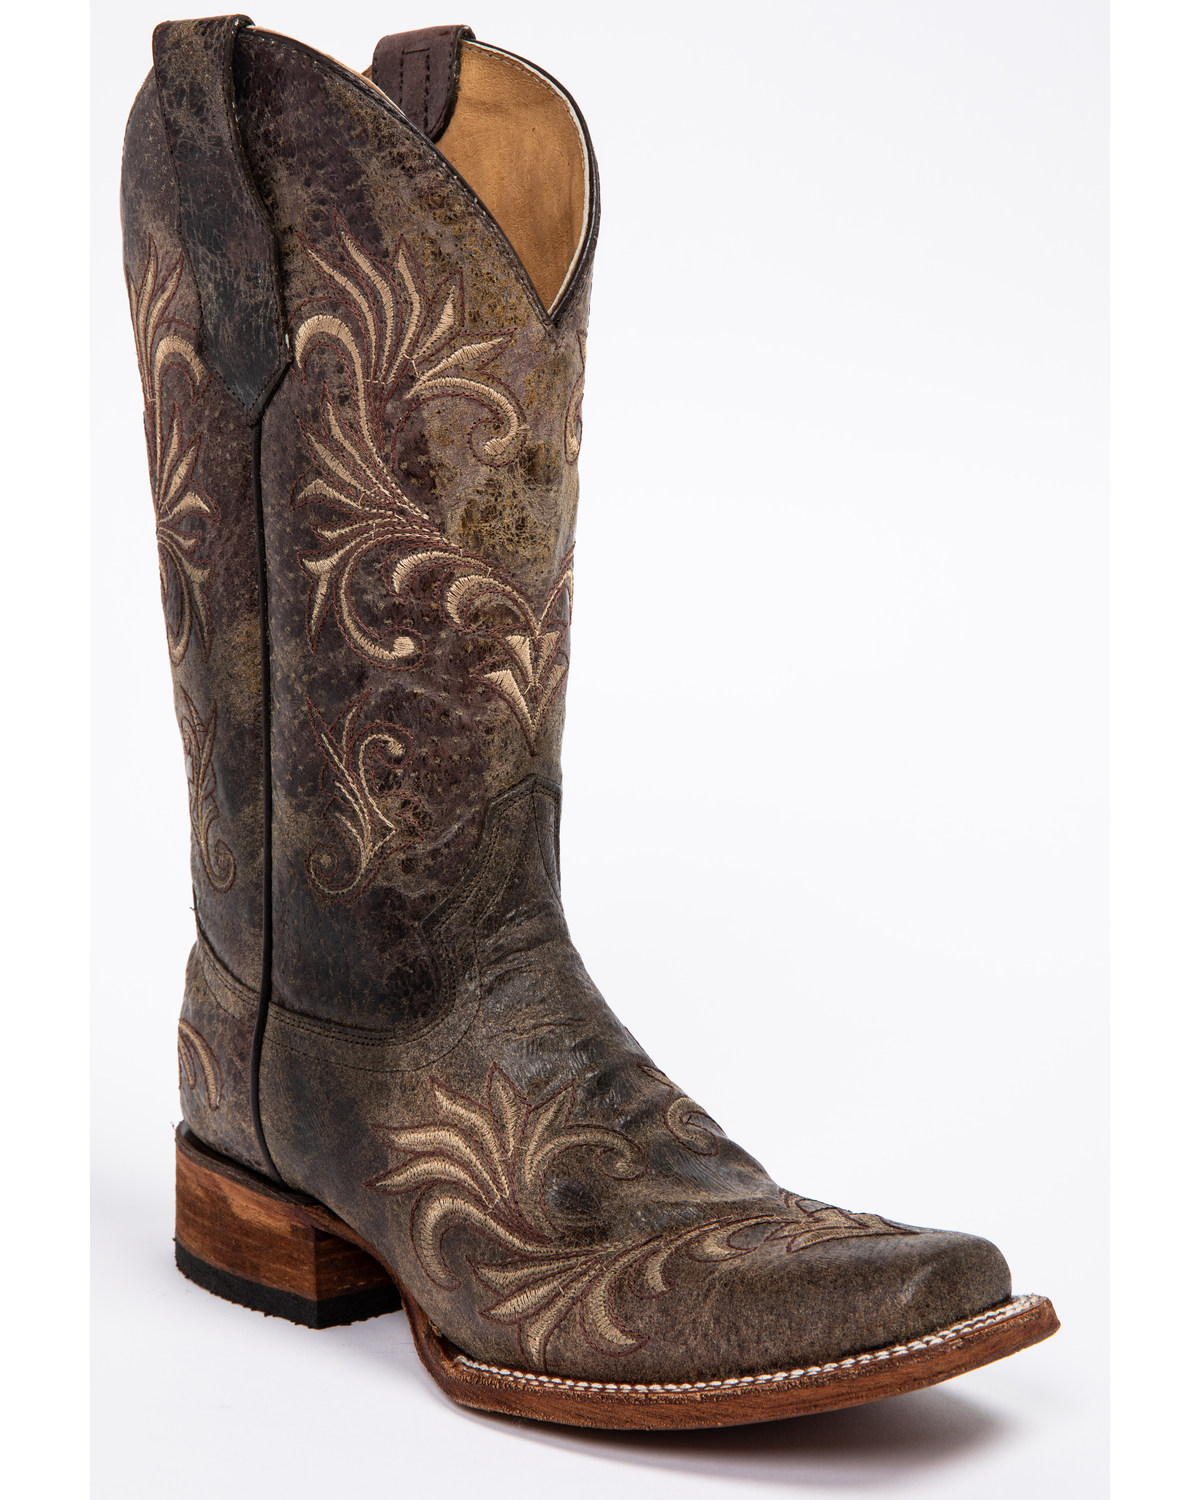 Circle G Women S Diamond Embroidered Cowgirl Boot Square: Circle G Women's Distressed Filigree Square Toe Western